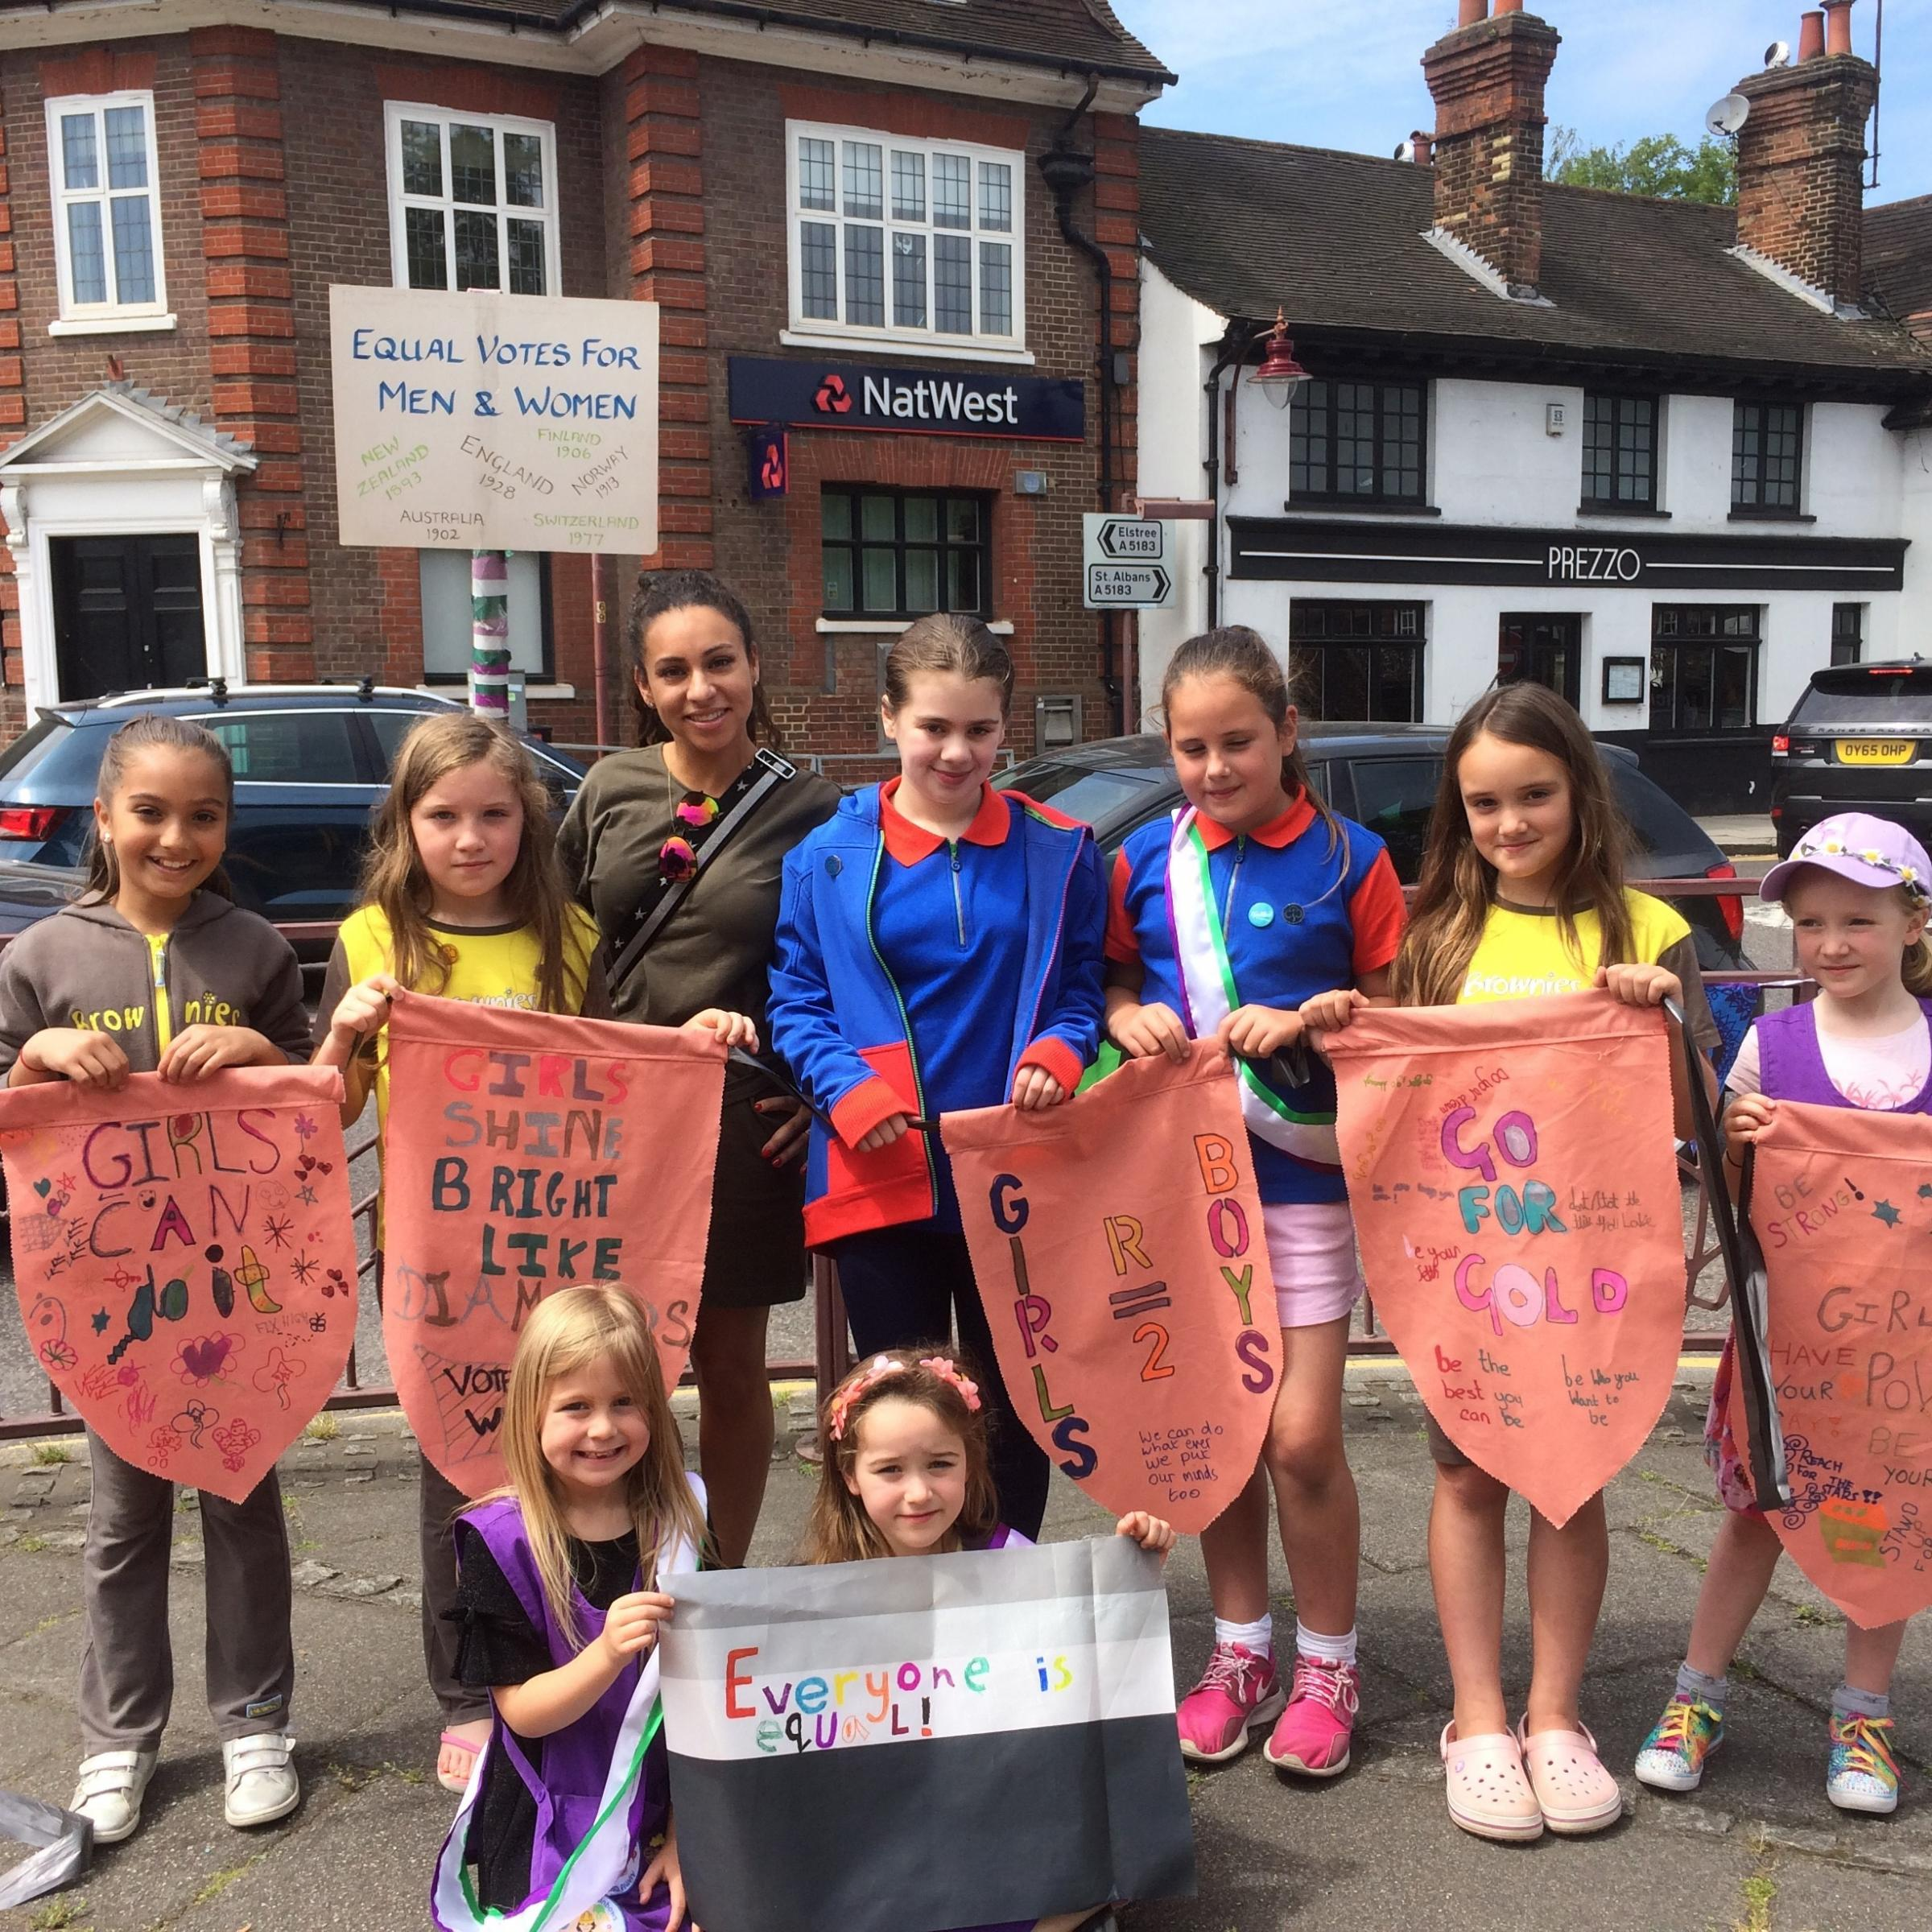 The girl guides with Cllr Caroline Clapper in Watling Street, Radlett